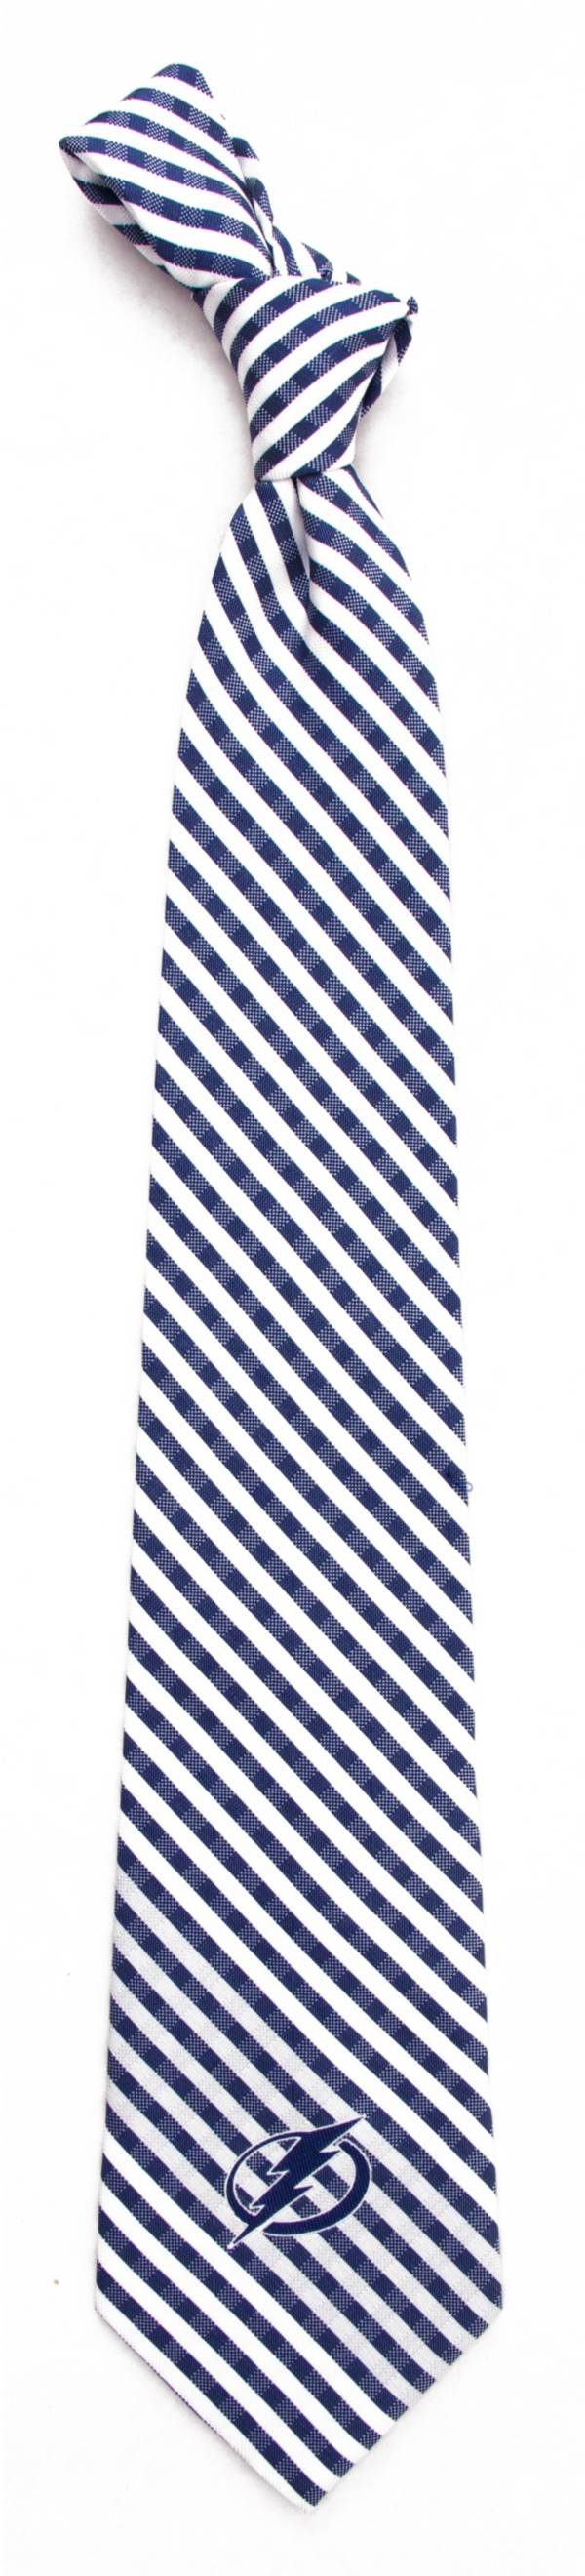 Eagles Wings Tampa Bay Lightning Gingham Necktie product image